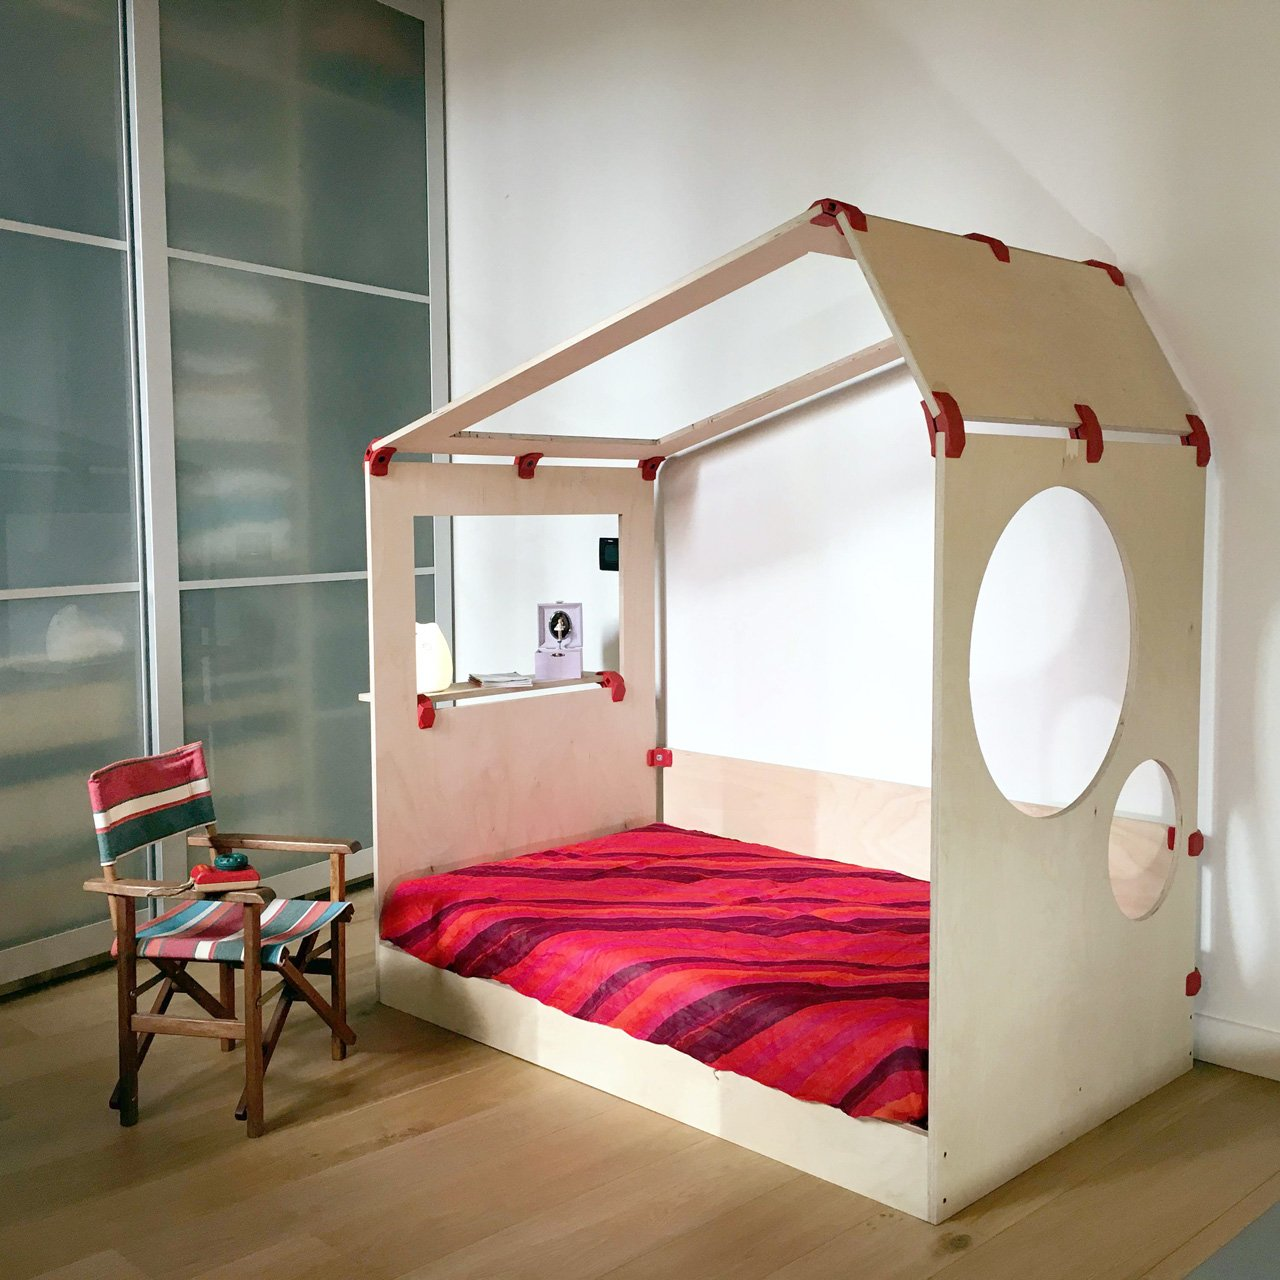 Playwood projects - Create a tiny house for your kids